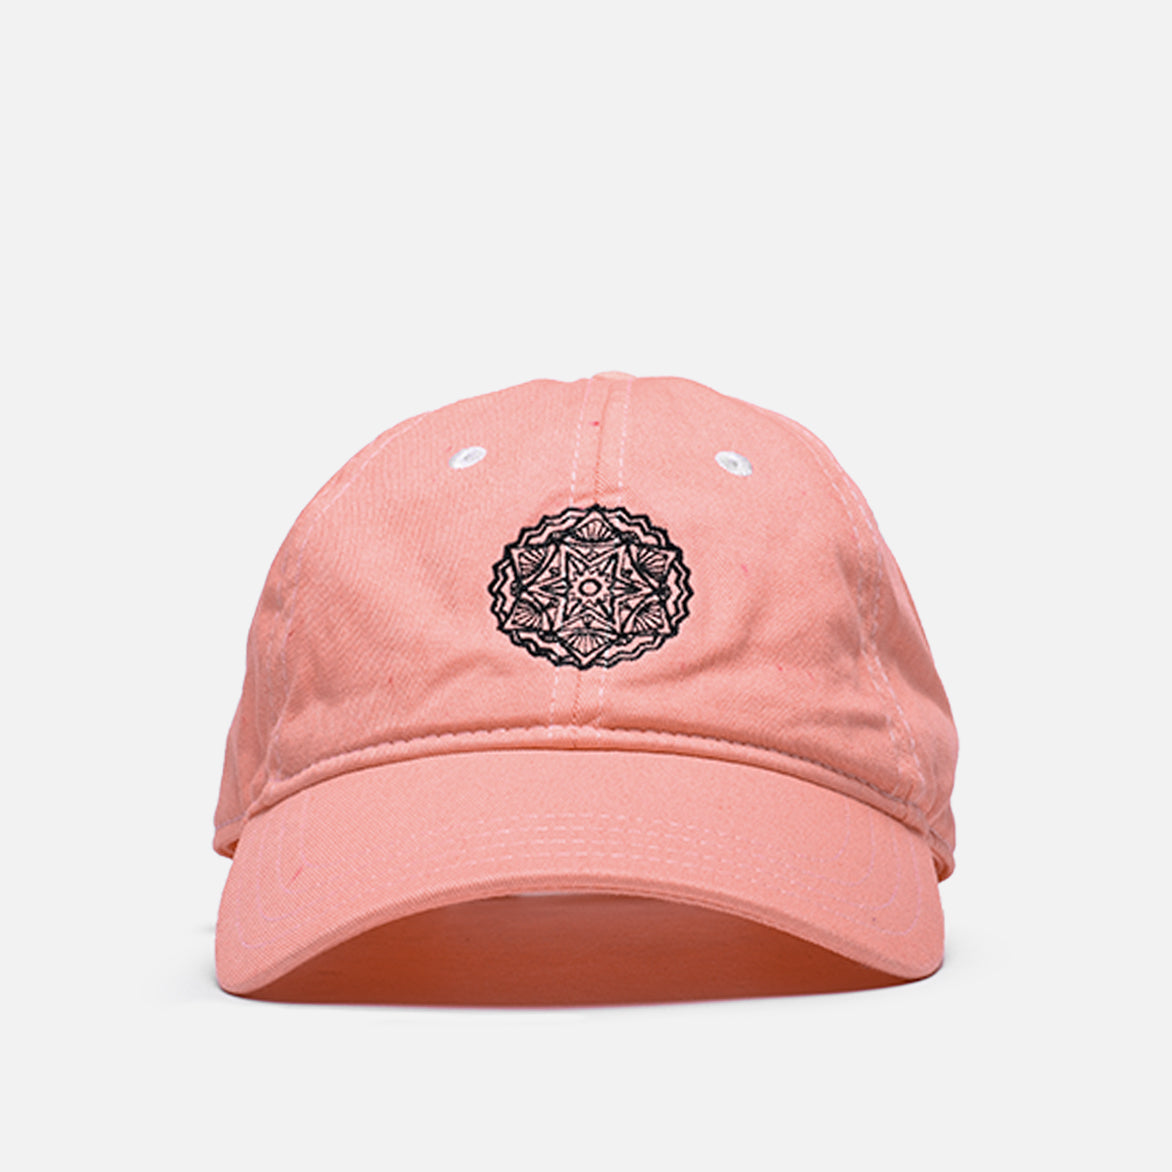 "WASHED COTTON 6 PANEL CAP ""BLACK MEDALLION"" - CORAL"